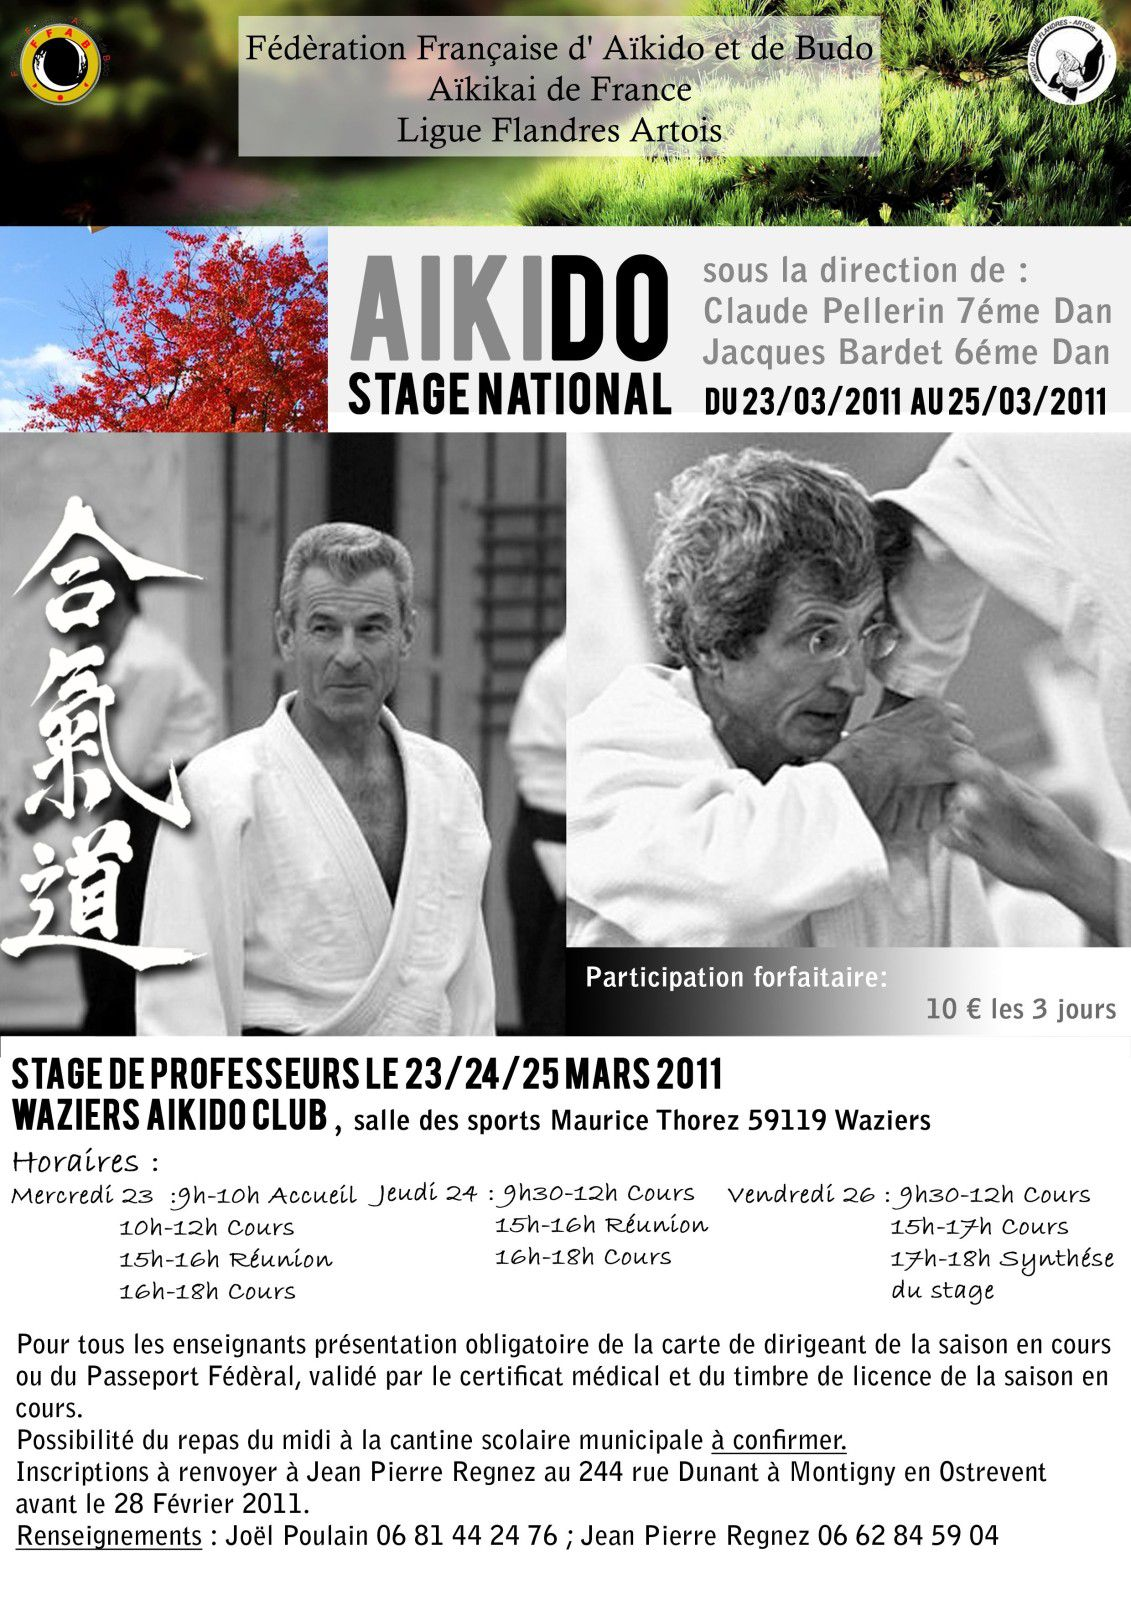 stage prof aikido à waziers, nord - Bardet & Pellerin mars 2011